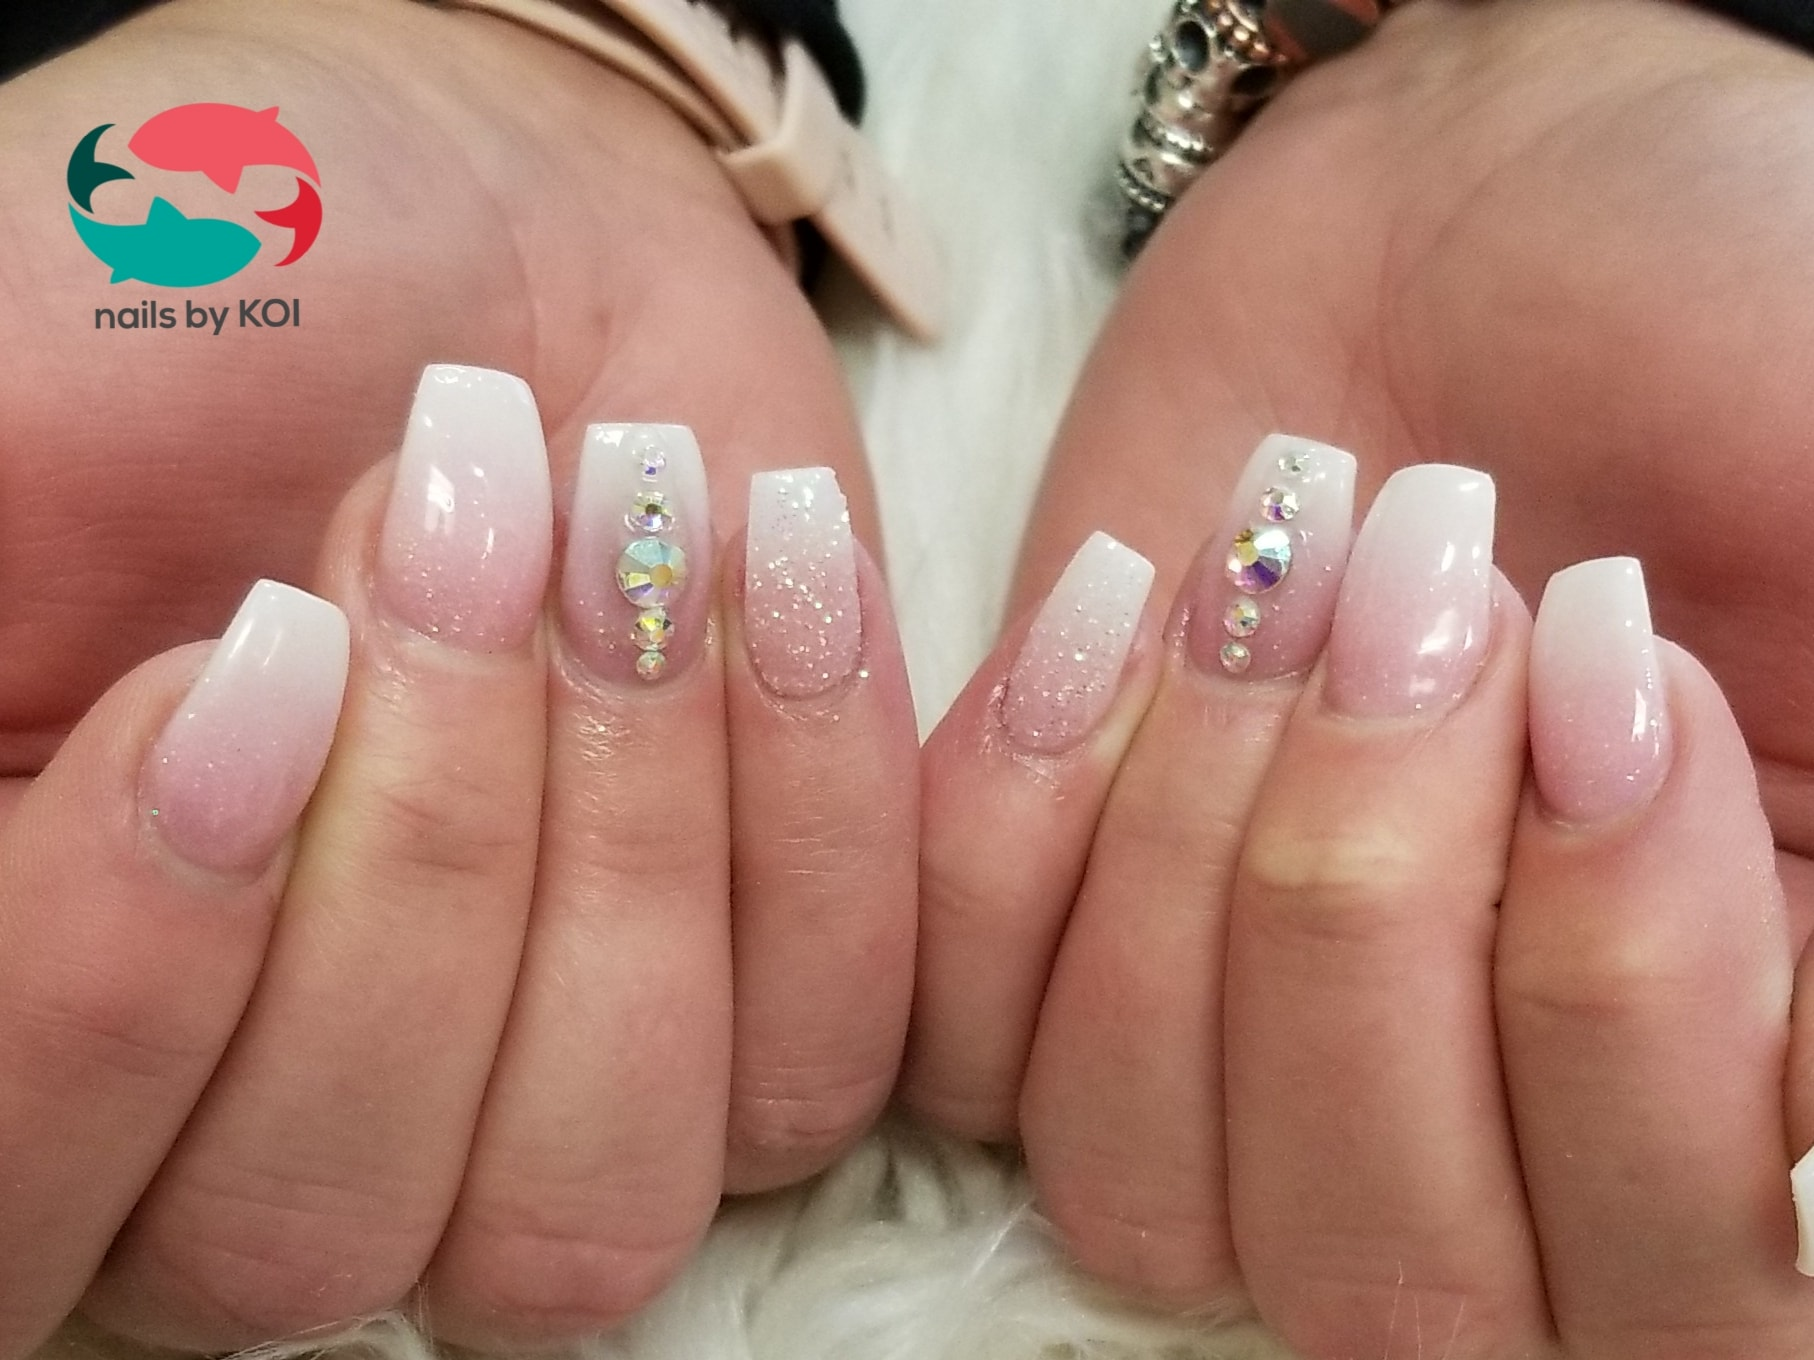 Top Nails Voted Best Nail Salon In Clarksville Tn 37042 The nails are a light blue chrome with two accent nails.